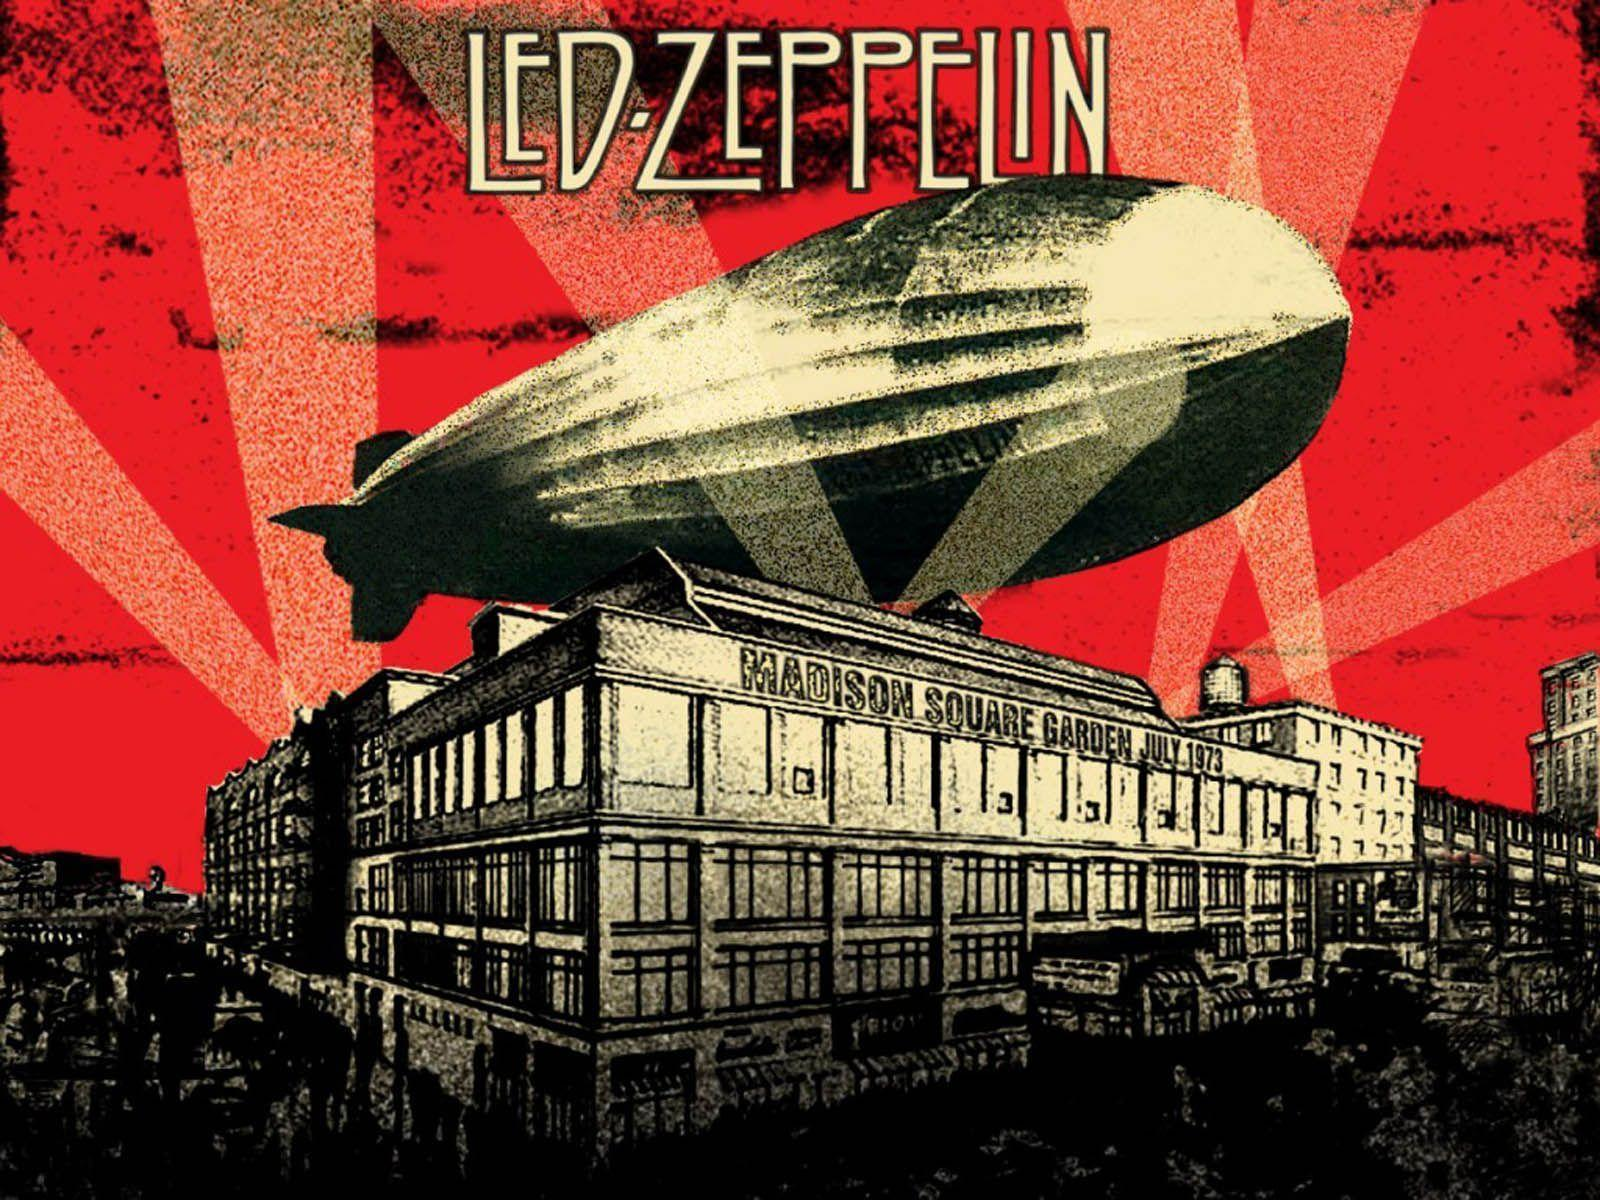 Led zeppelin celebration day album download free